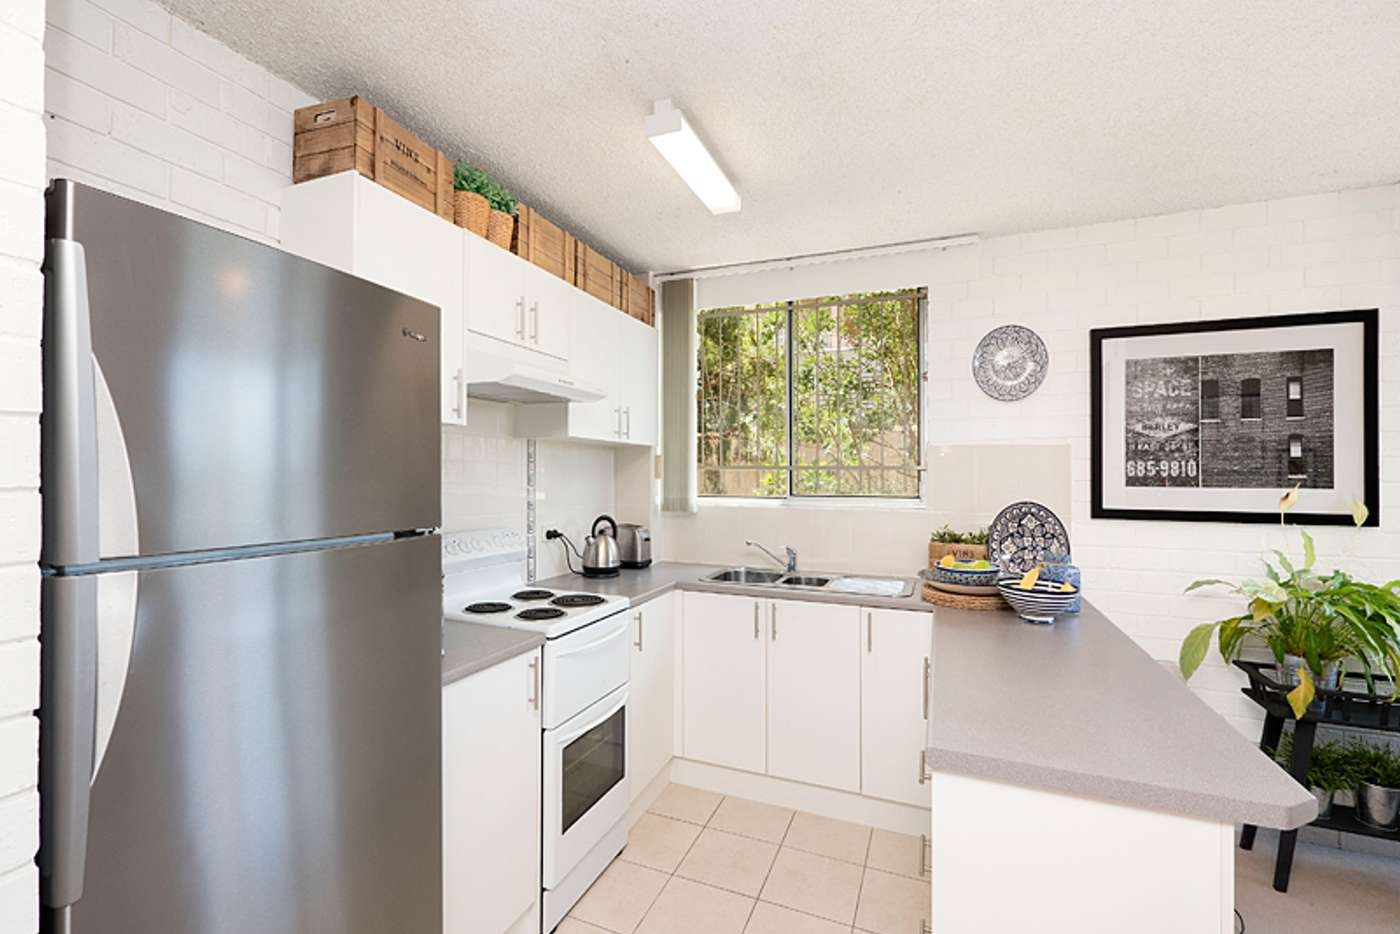 Main view of Homely unit listing, 1/36 Dunmore Terrace, Auchenflower QLD 4066